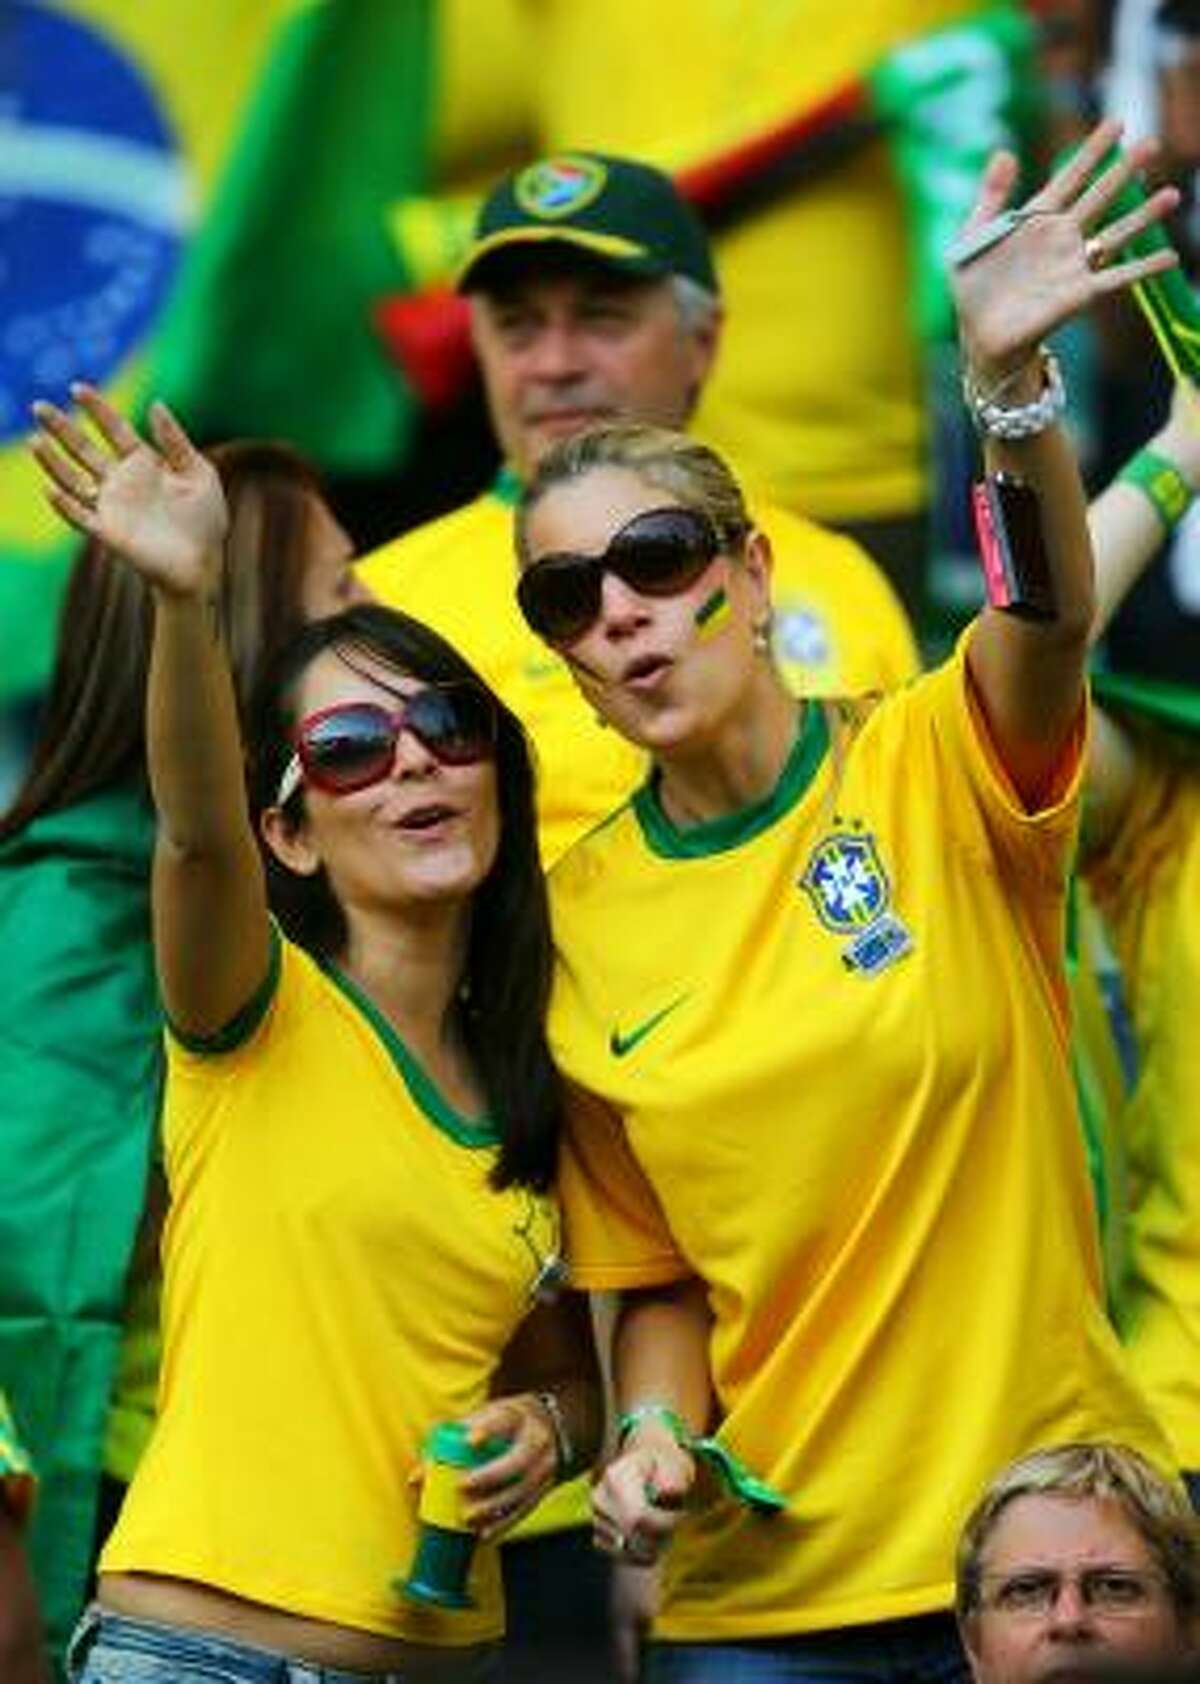 Brazil fans enjoy the atmosphere at the match against Portugal.